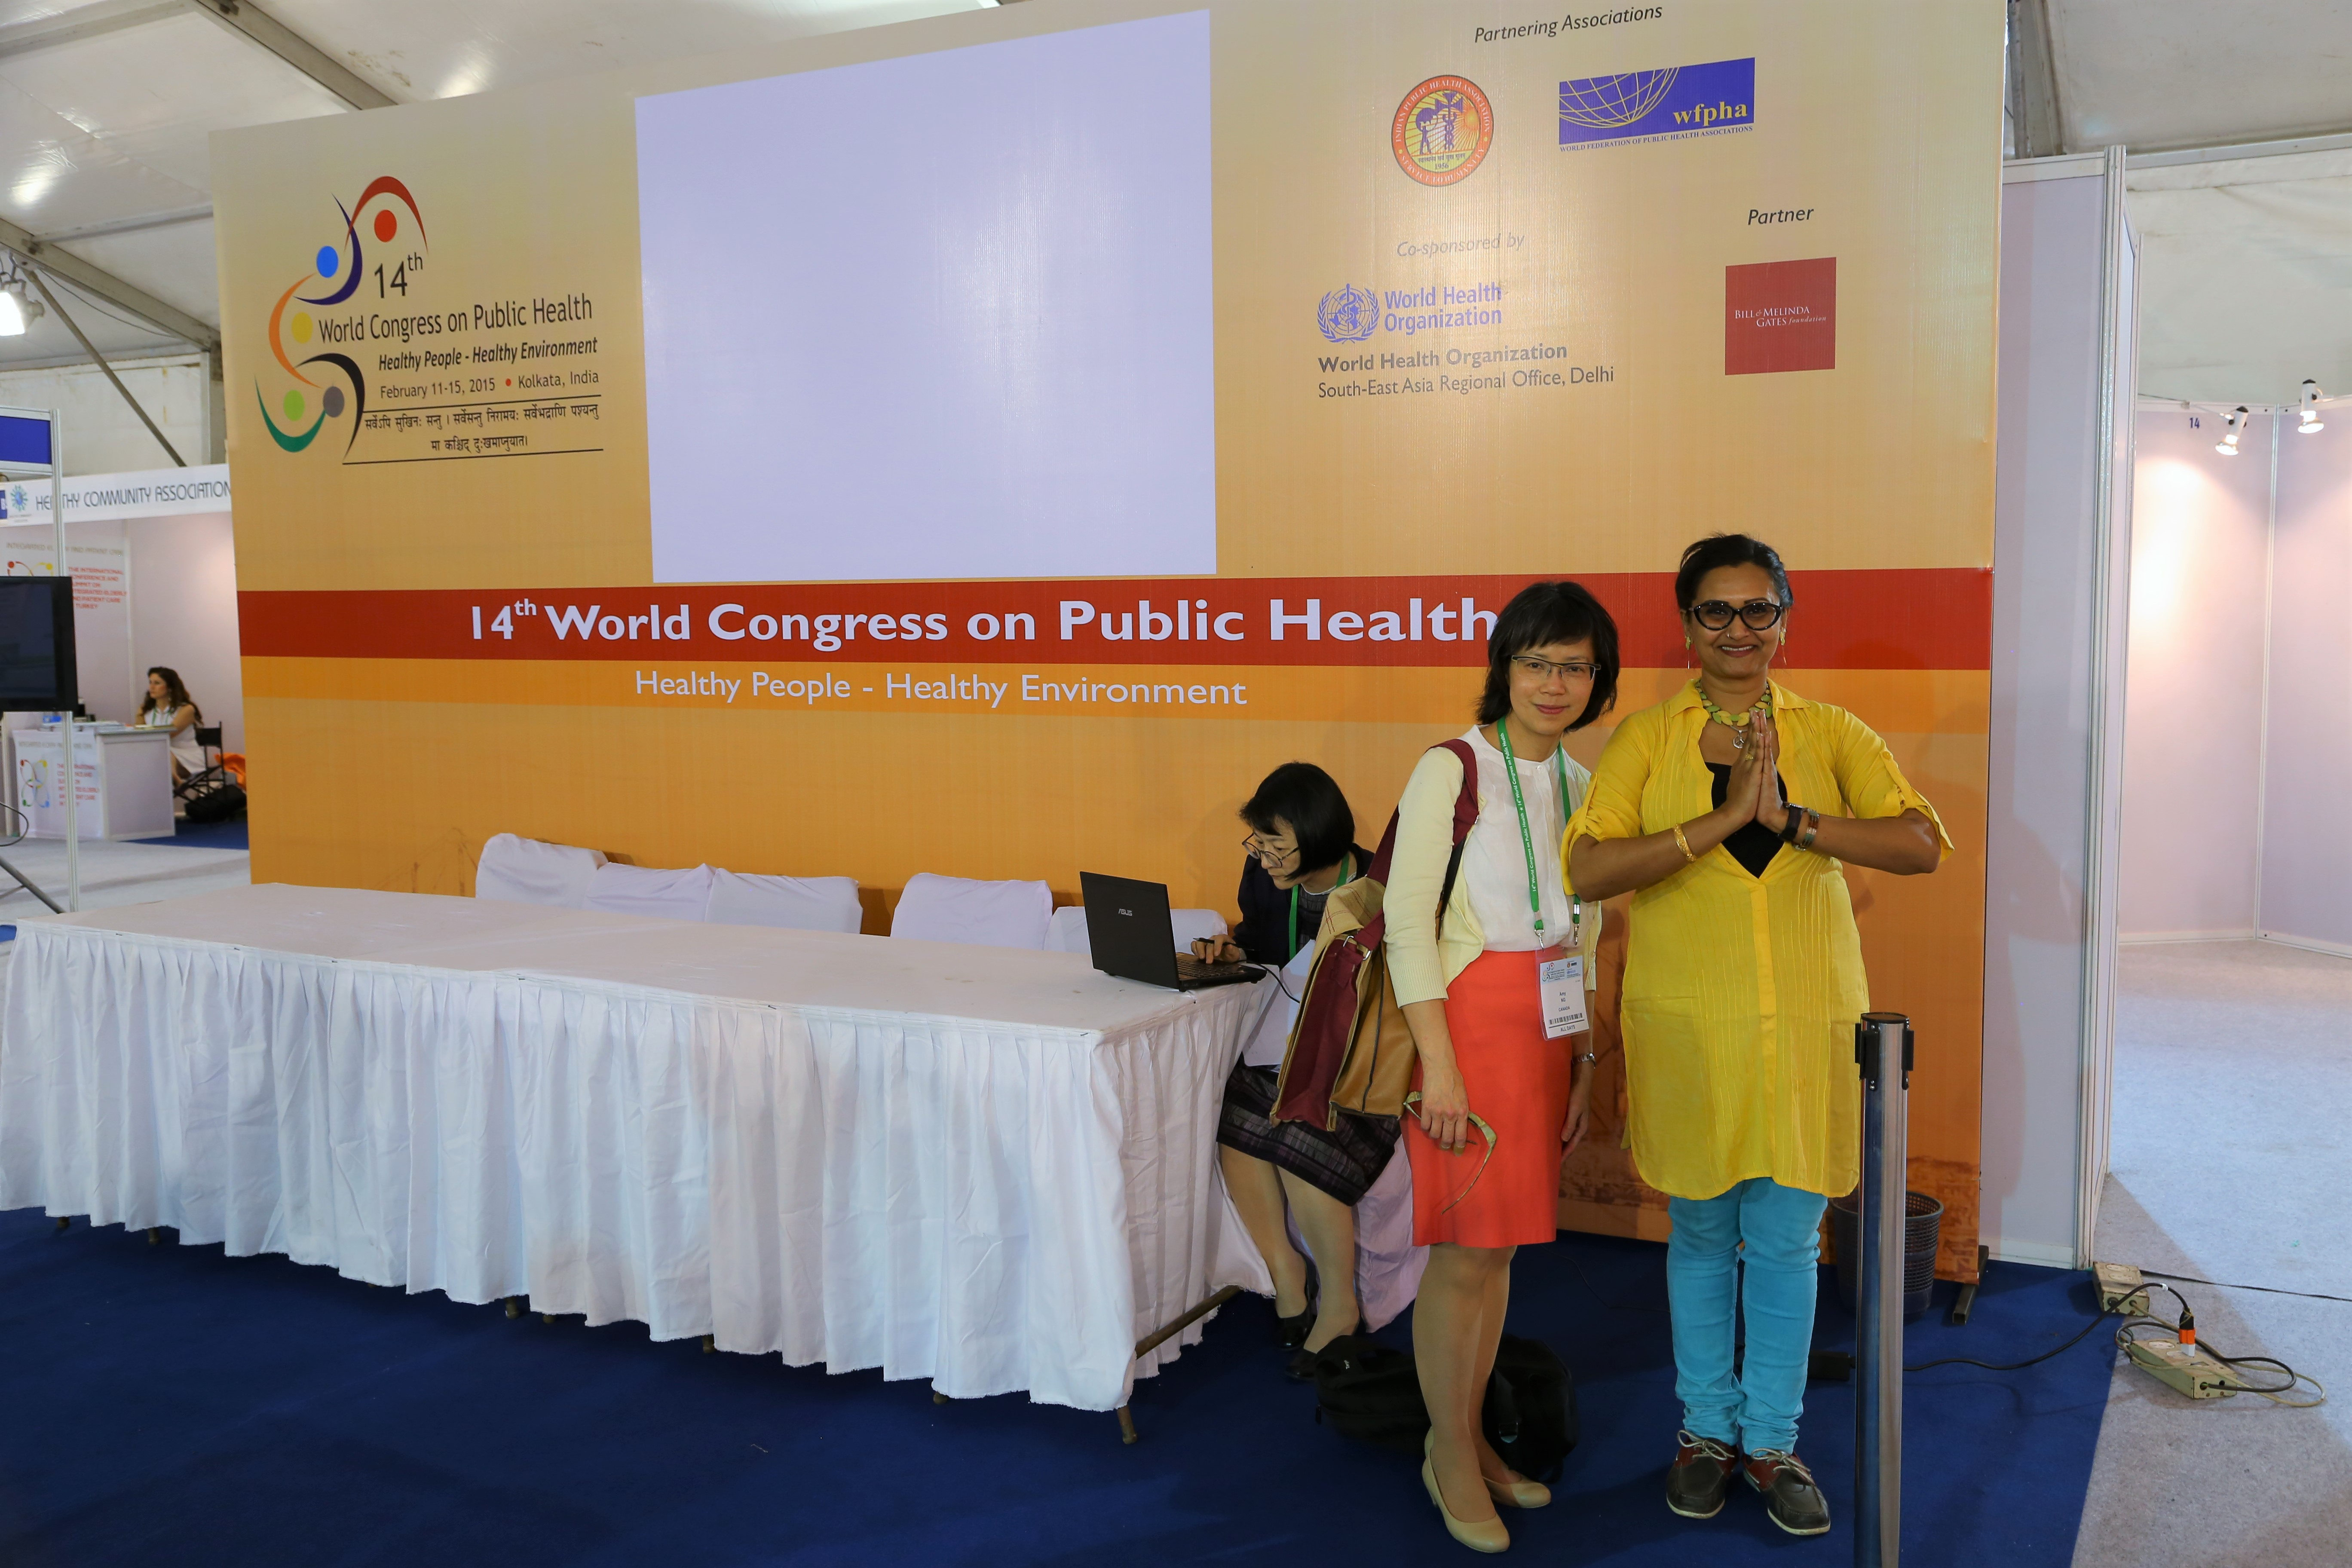 14th World Congress on Public Health